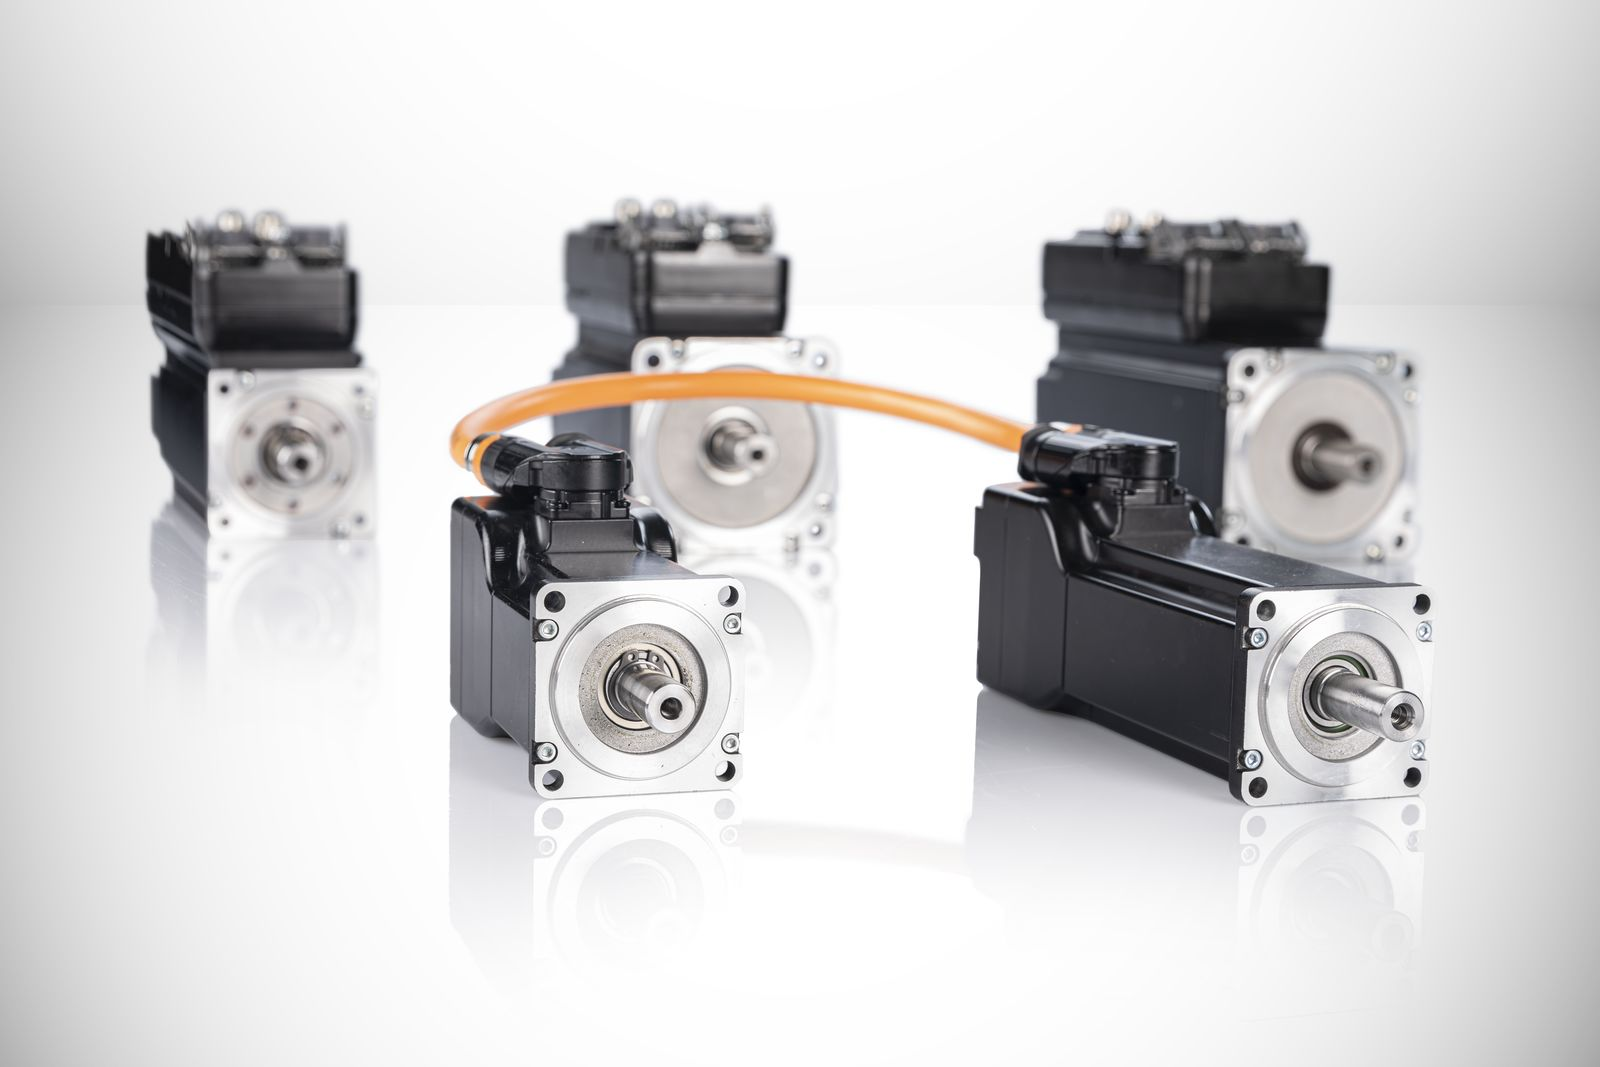 Big performance in a small package Compact motor-drive combinations minimize machine footprint